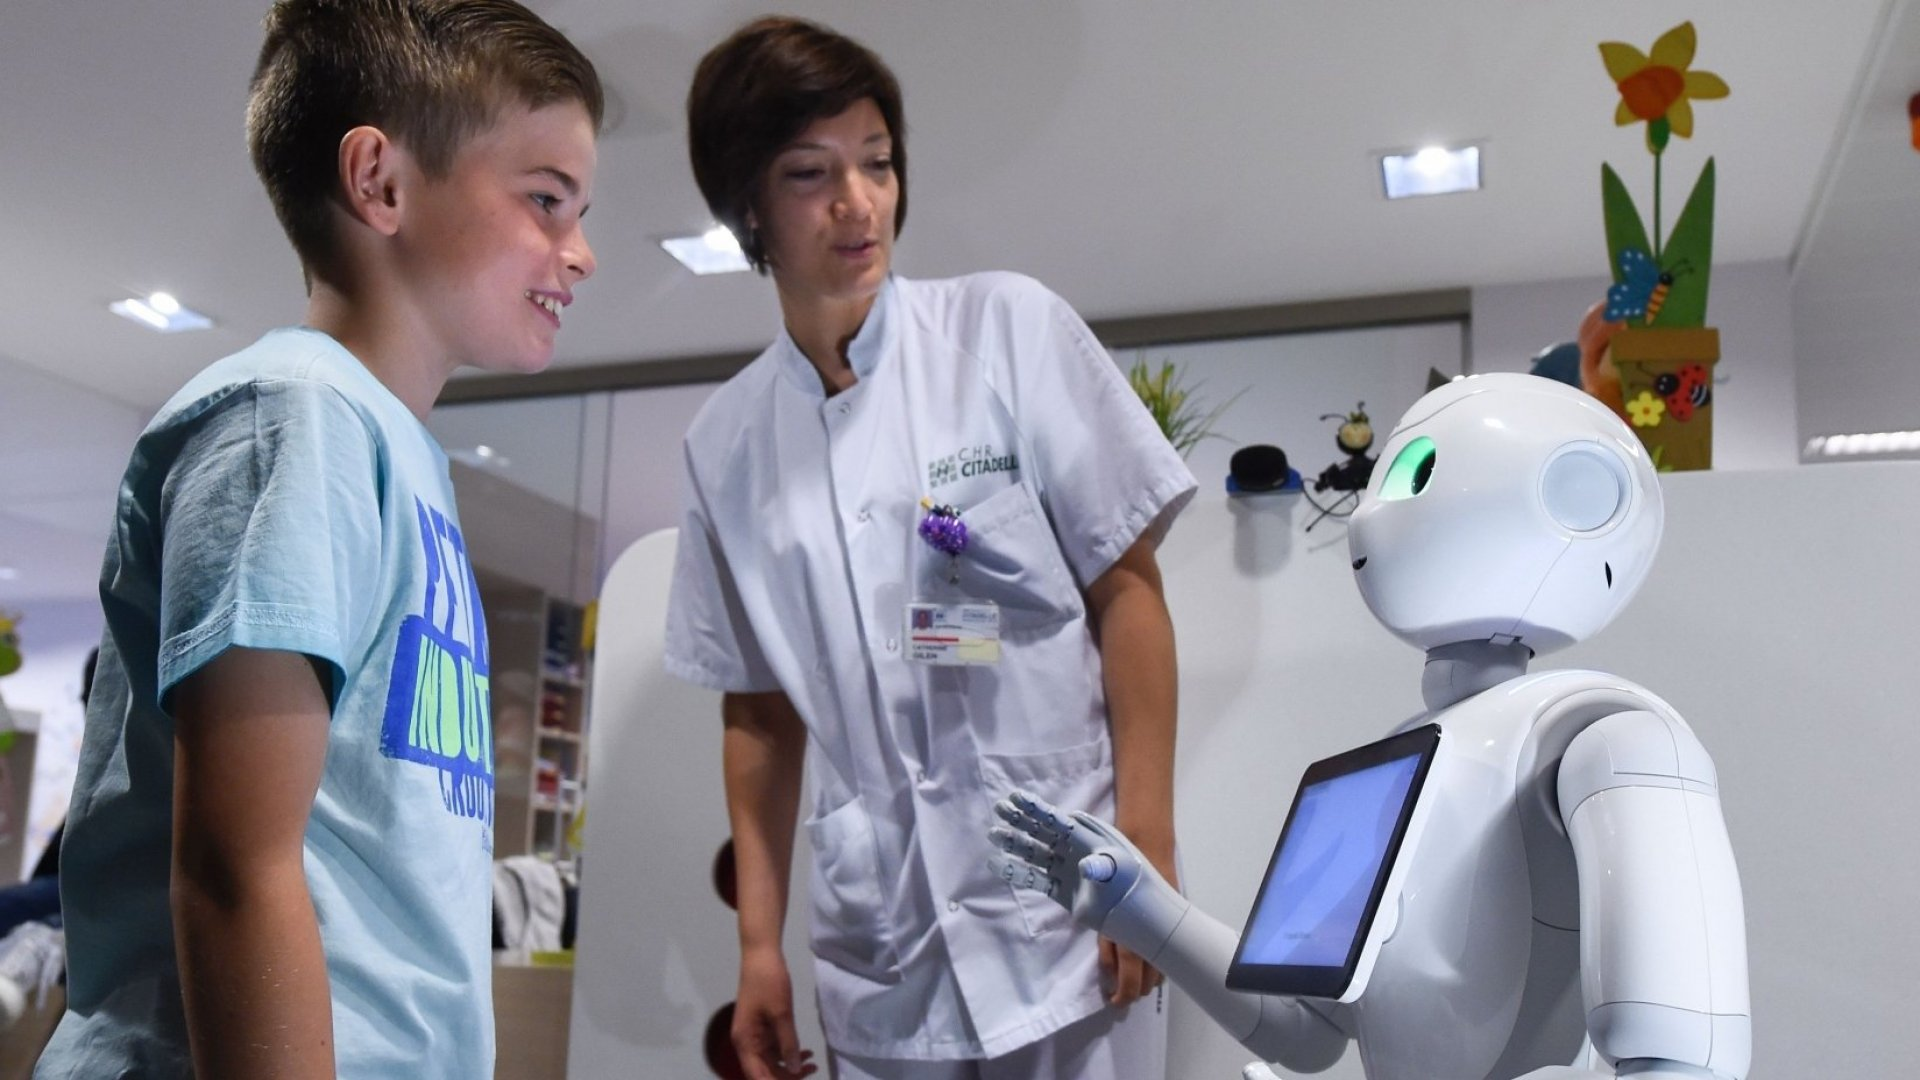 Pepper, a robot made by SoftBank Robotics, works alongside doctors and nurses at a hospital in Belgium.